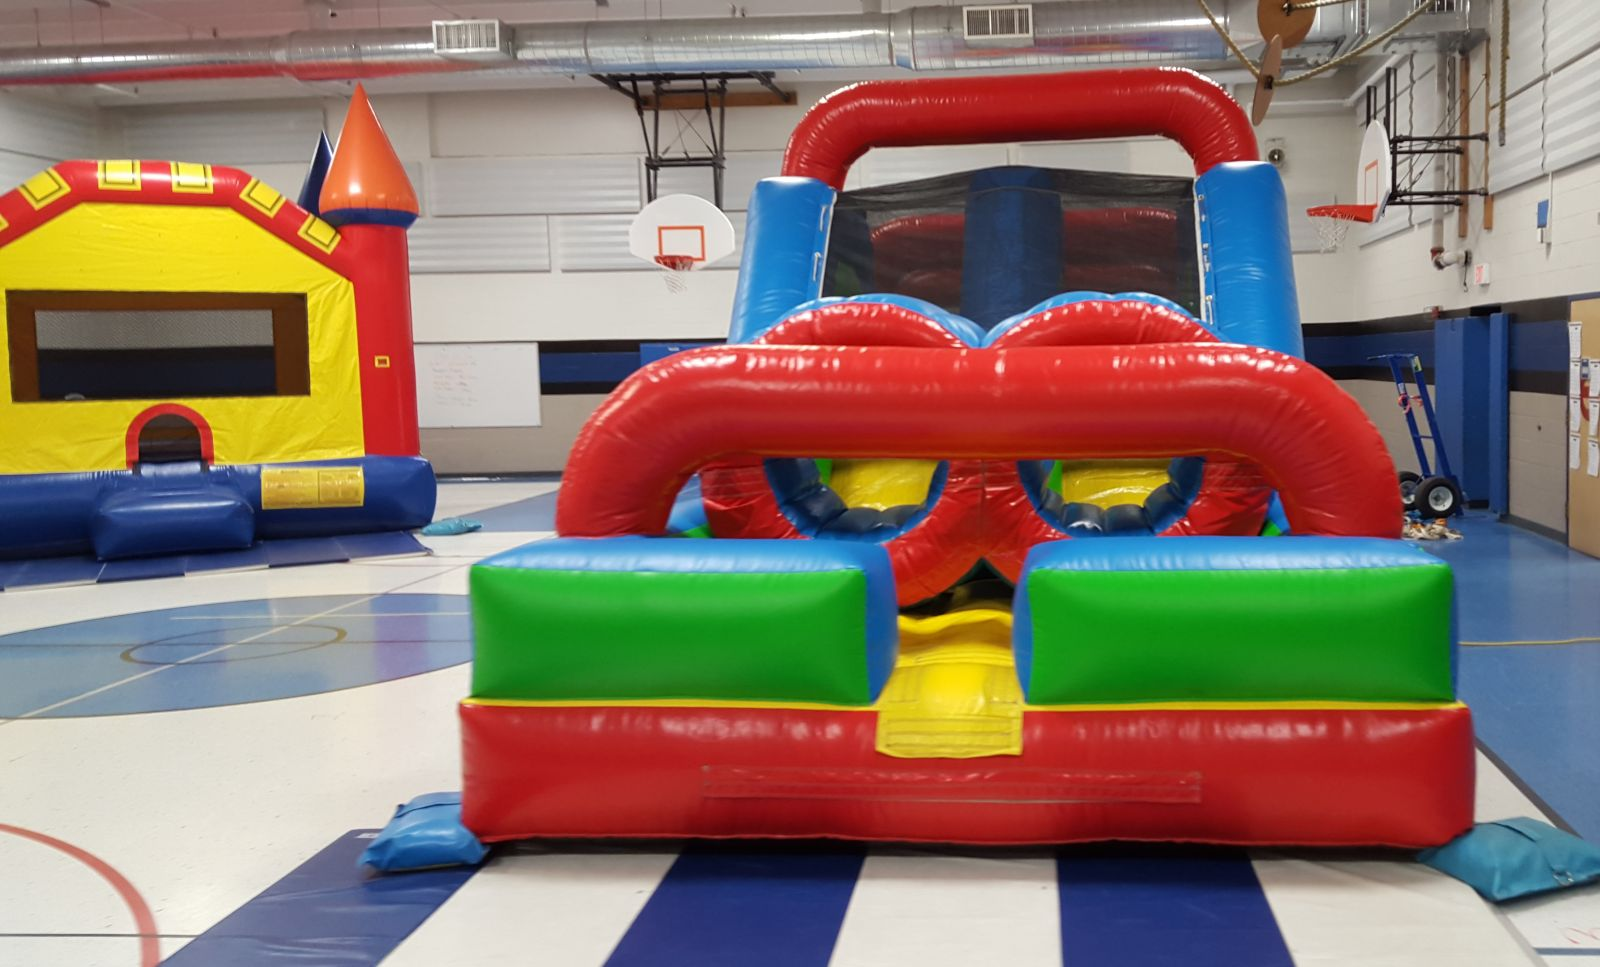 Obstacle Course and Bounce House in school gym